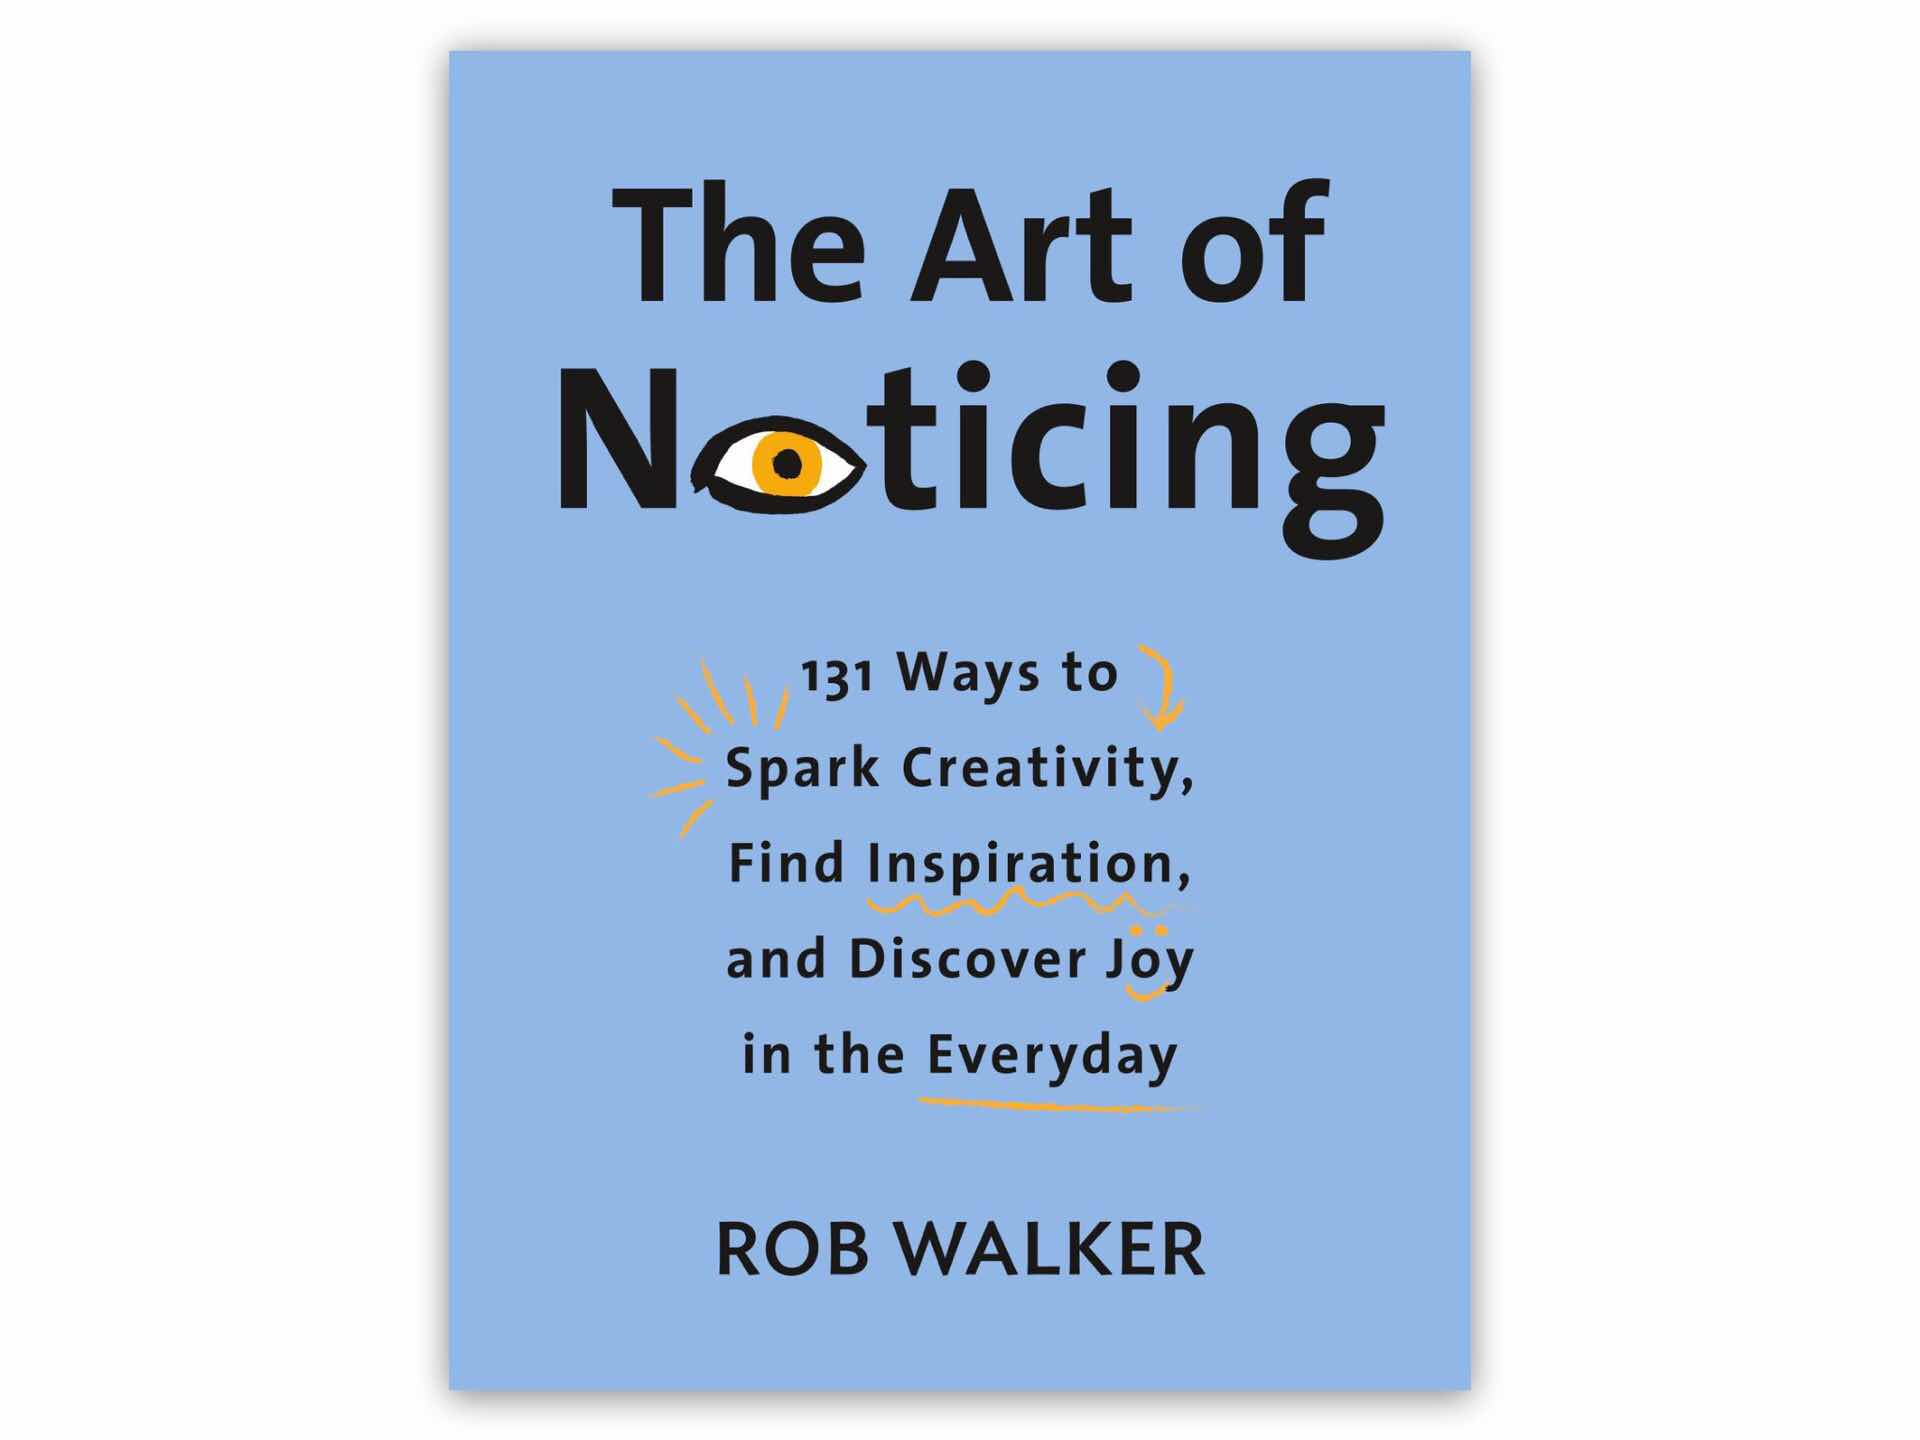 The Art of Noticing by Rob Walker ($17 hardcover)